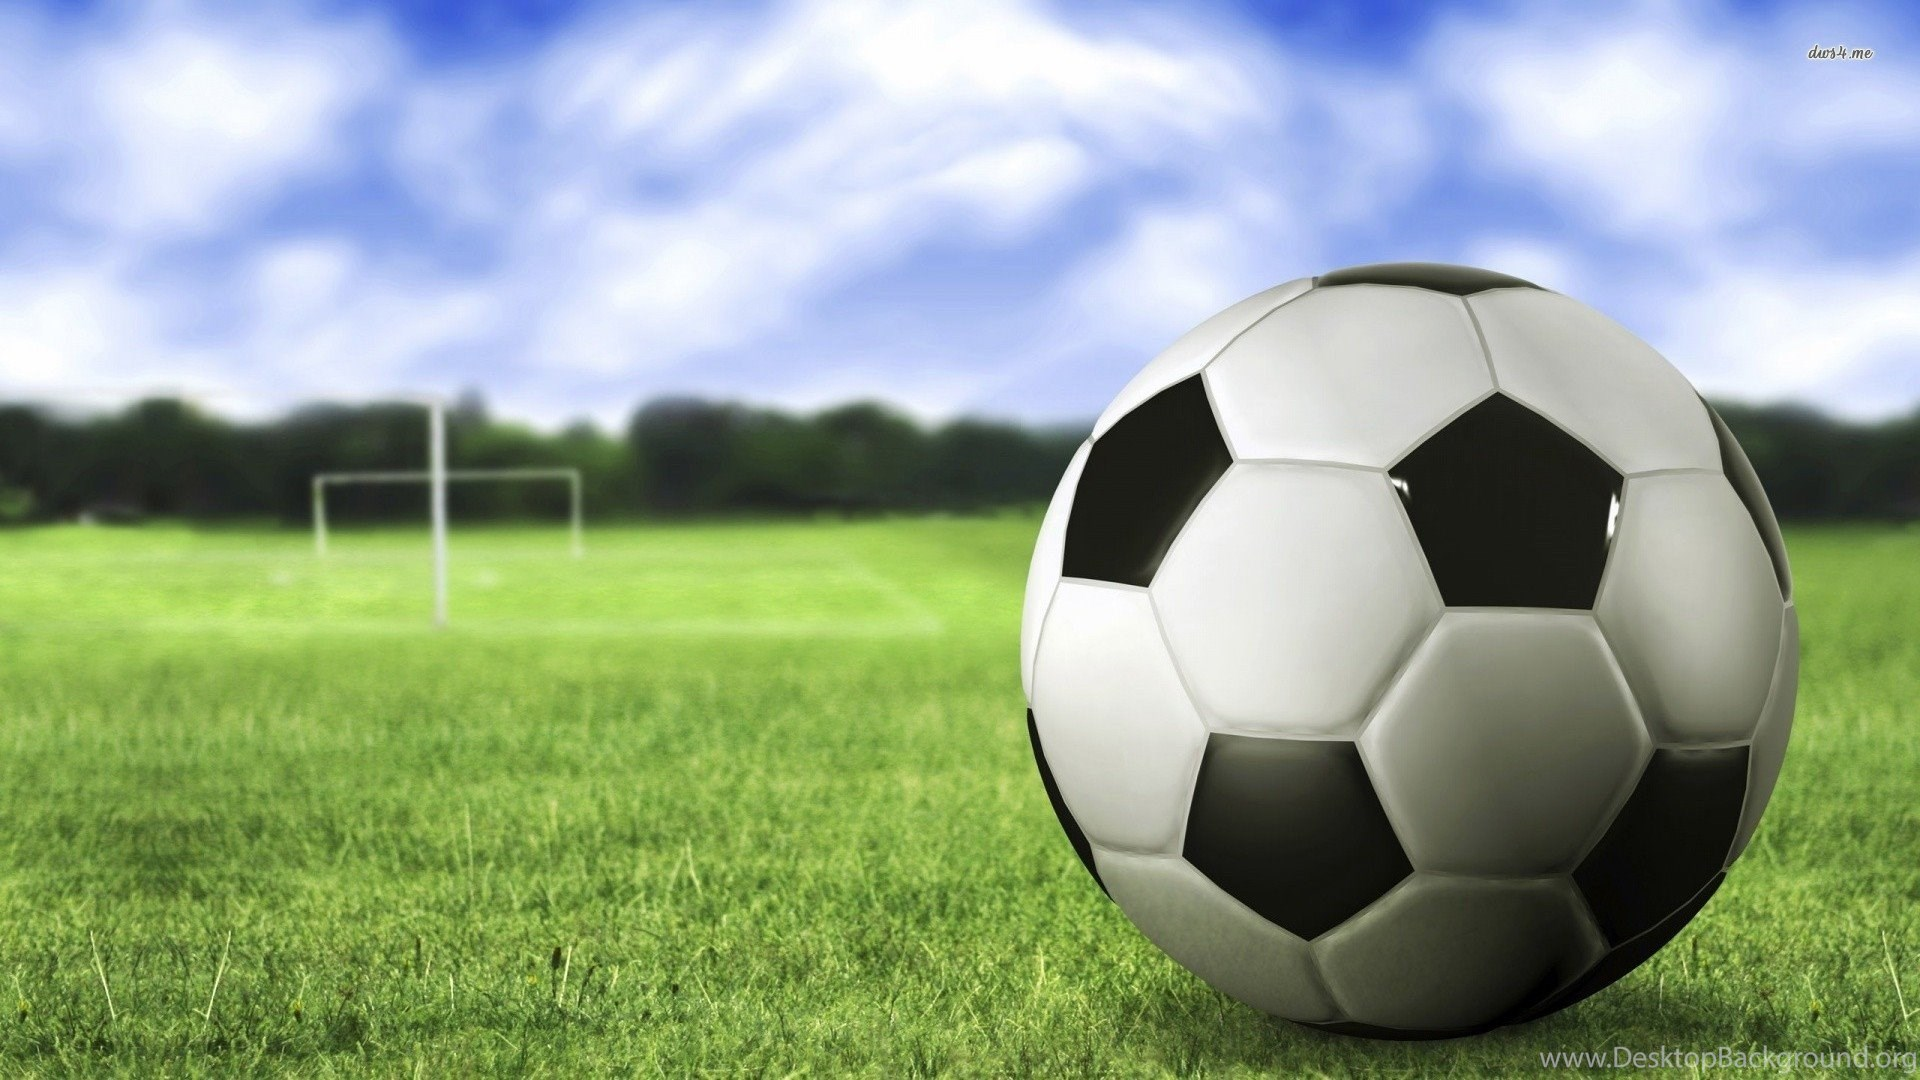 Soccer Field Backgrounds With Ball Desktop Background